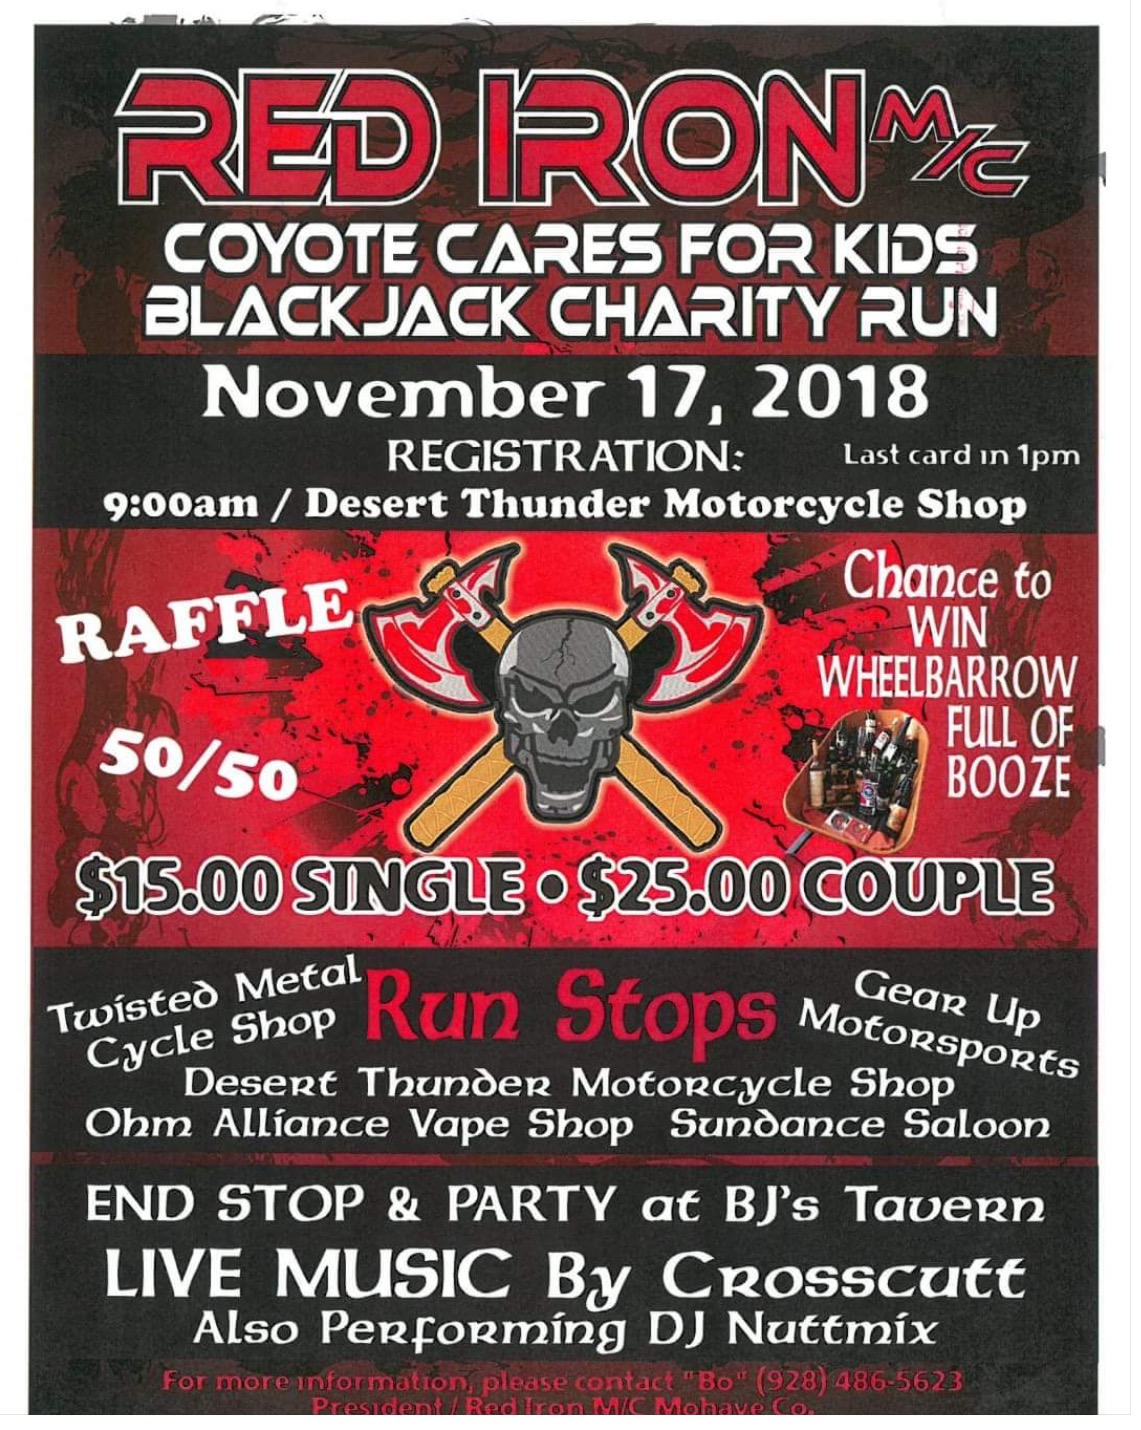 Red Iron m/c Coyote Cares for Kids Blackjack Charity Run